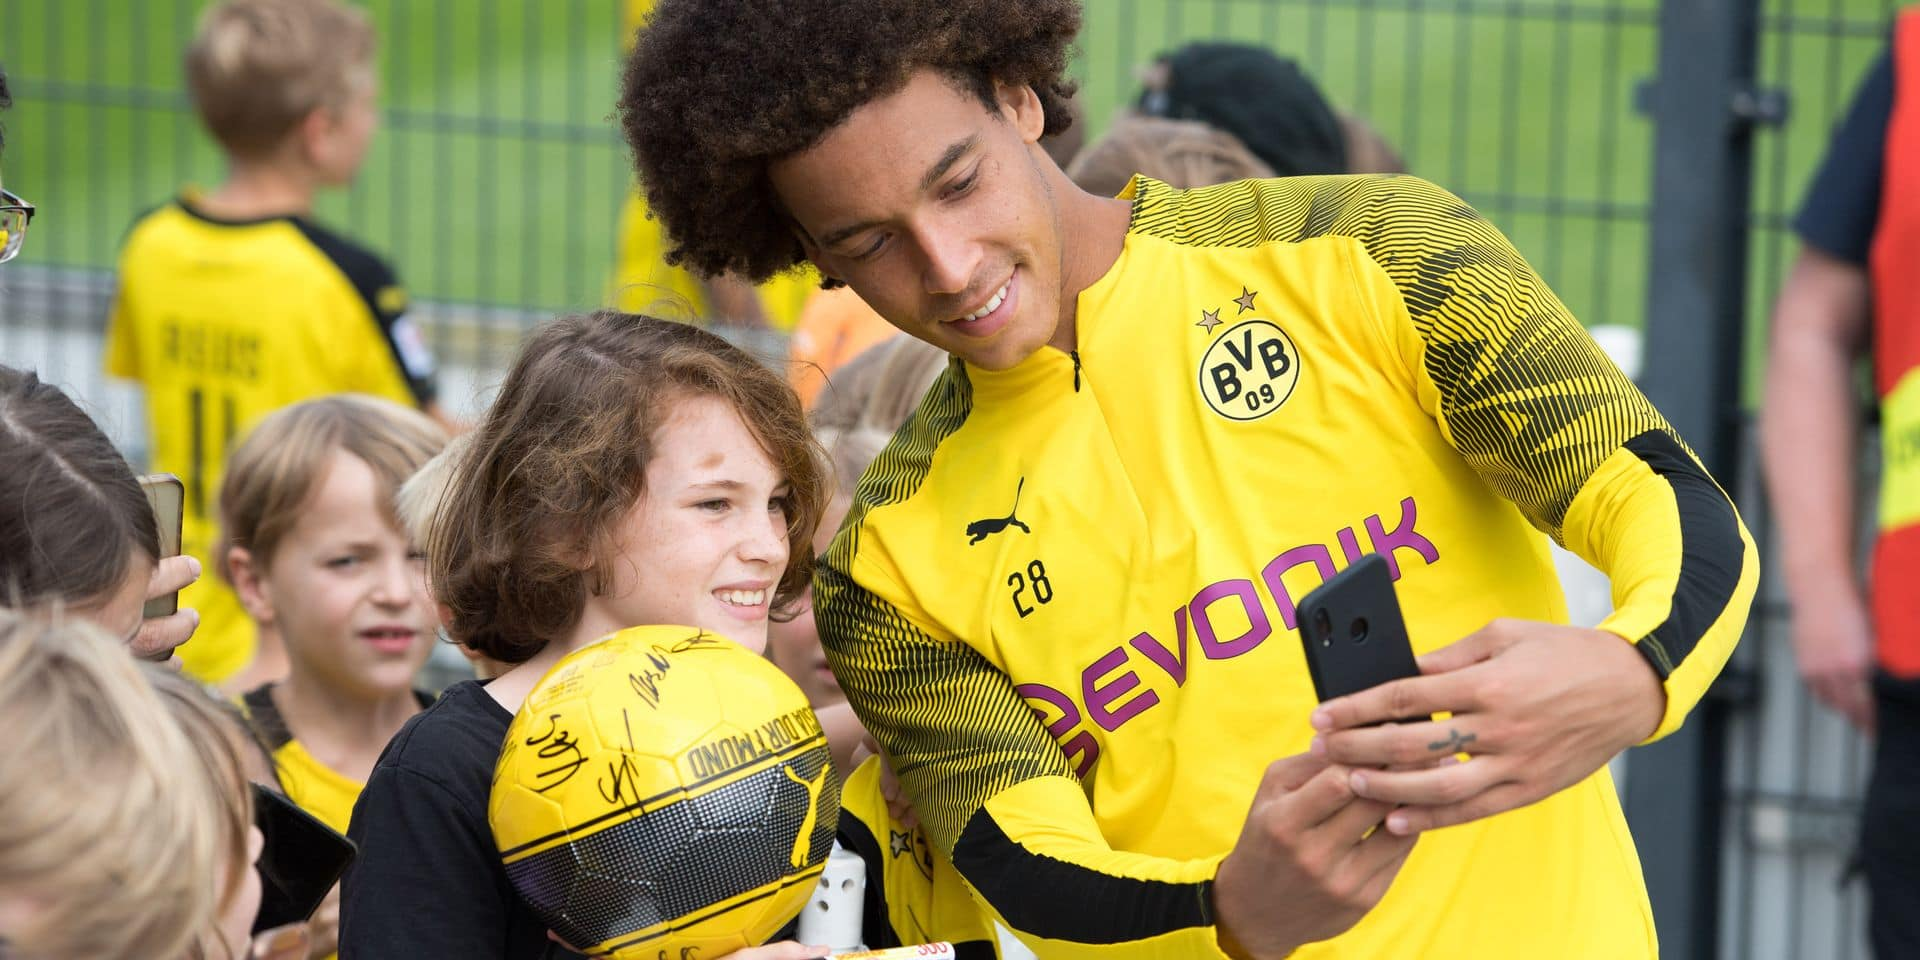 Axel WITSEL (DO) takes a selfie with the fans, fan, mobile phone photo, photo, smartphone, half figure, half figure, football 1. Bundesliga, training, Borussia Dortmund (DO) on 20.08.2019 in Dortmund / Germany. ¬ | usage worldwide Reporters / DPA